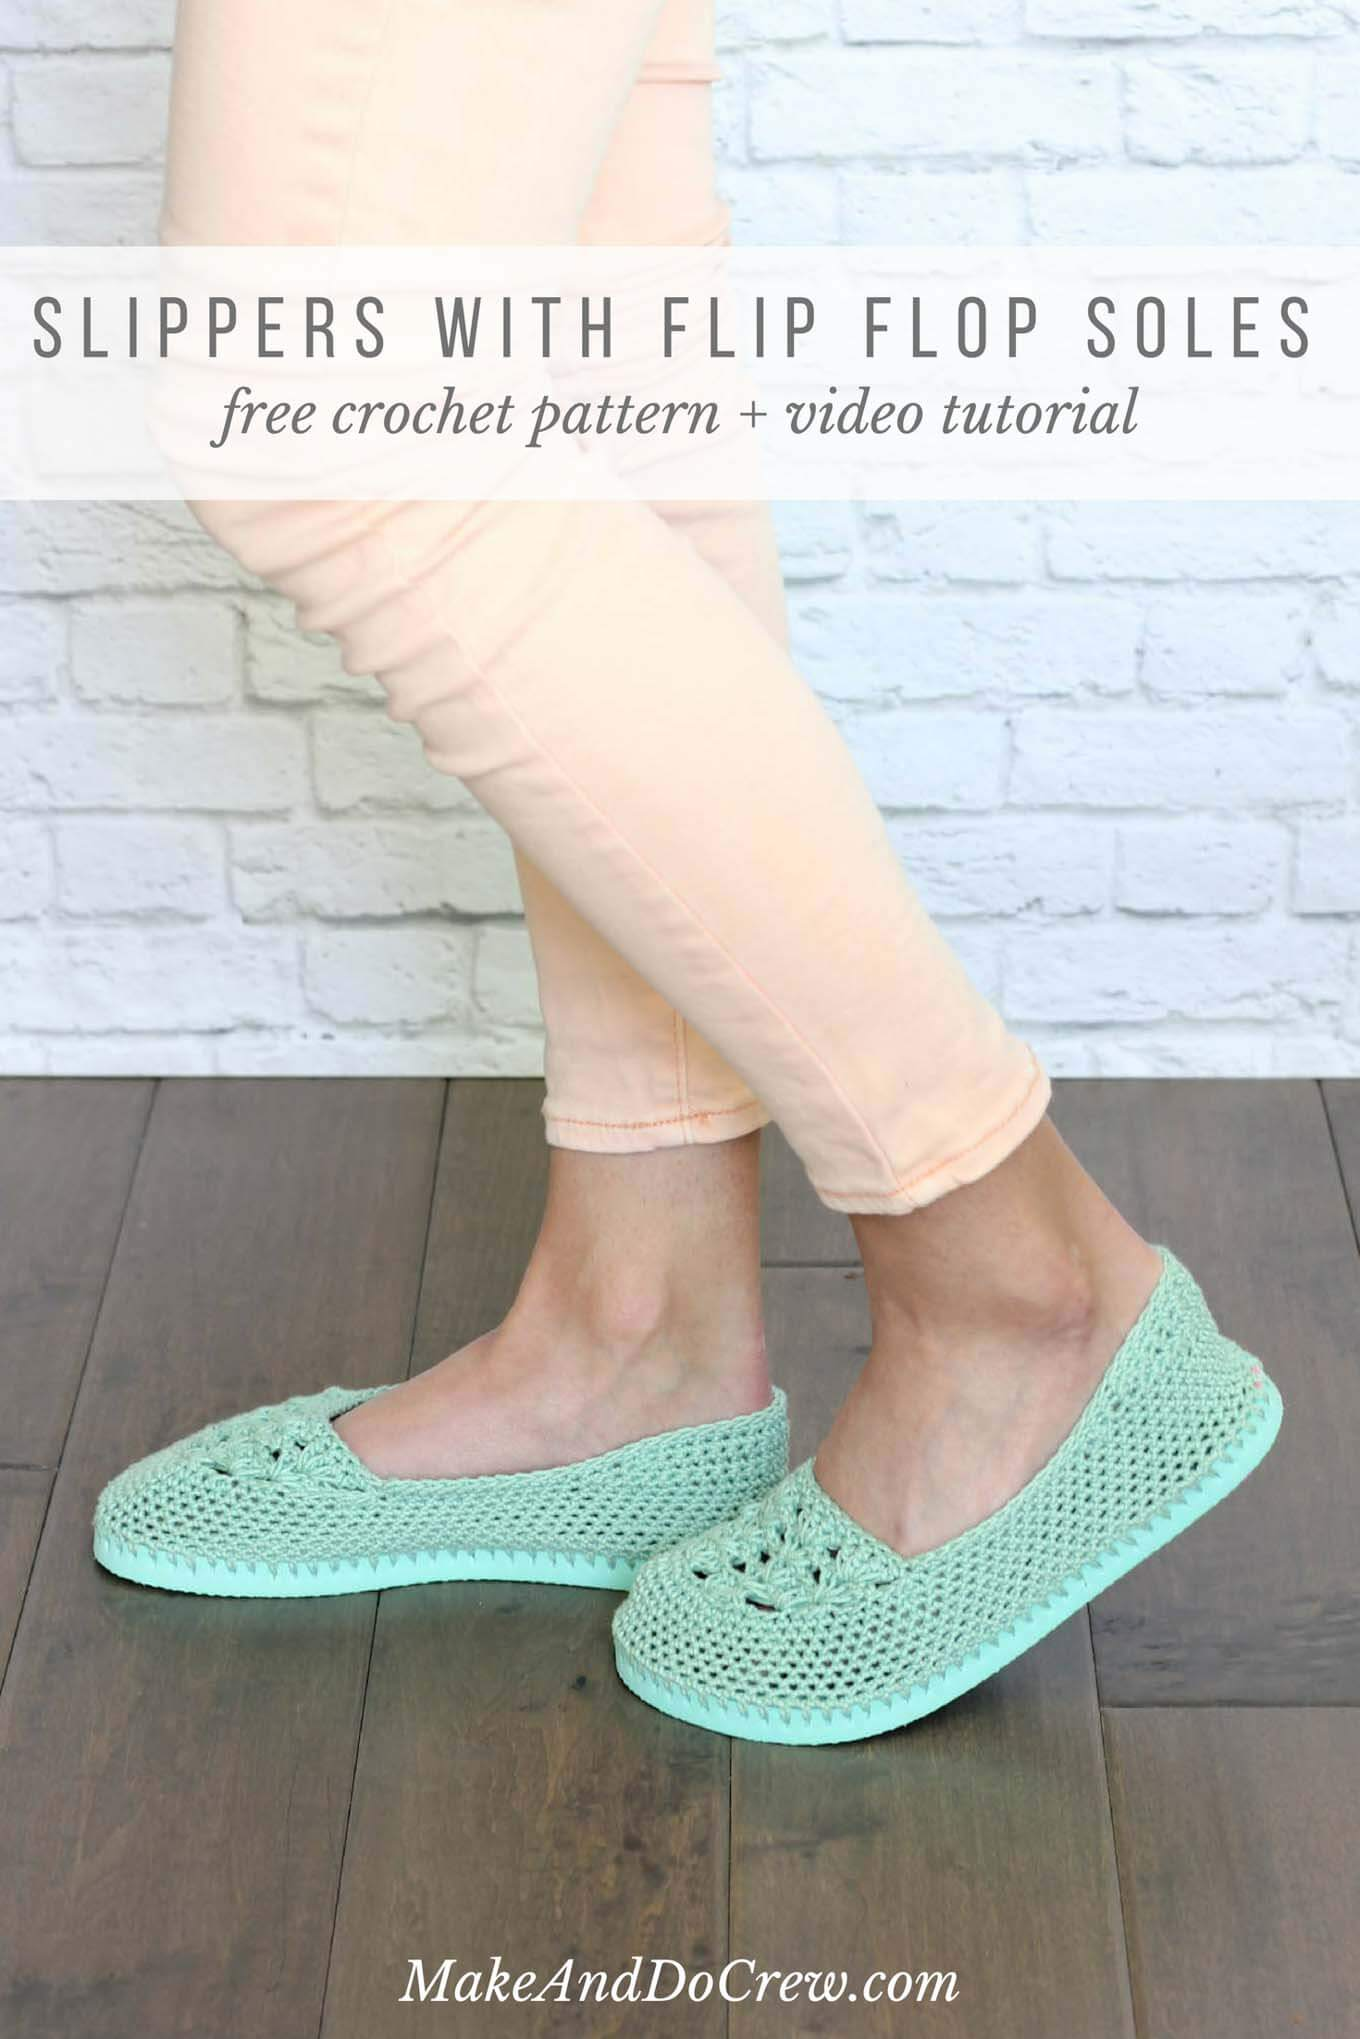 42a0a29f1 This free crochet slippers with flip flop soles pattern is a collaboration  with Lion Brand Yarn. This post contains affiliate links.